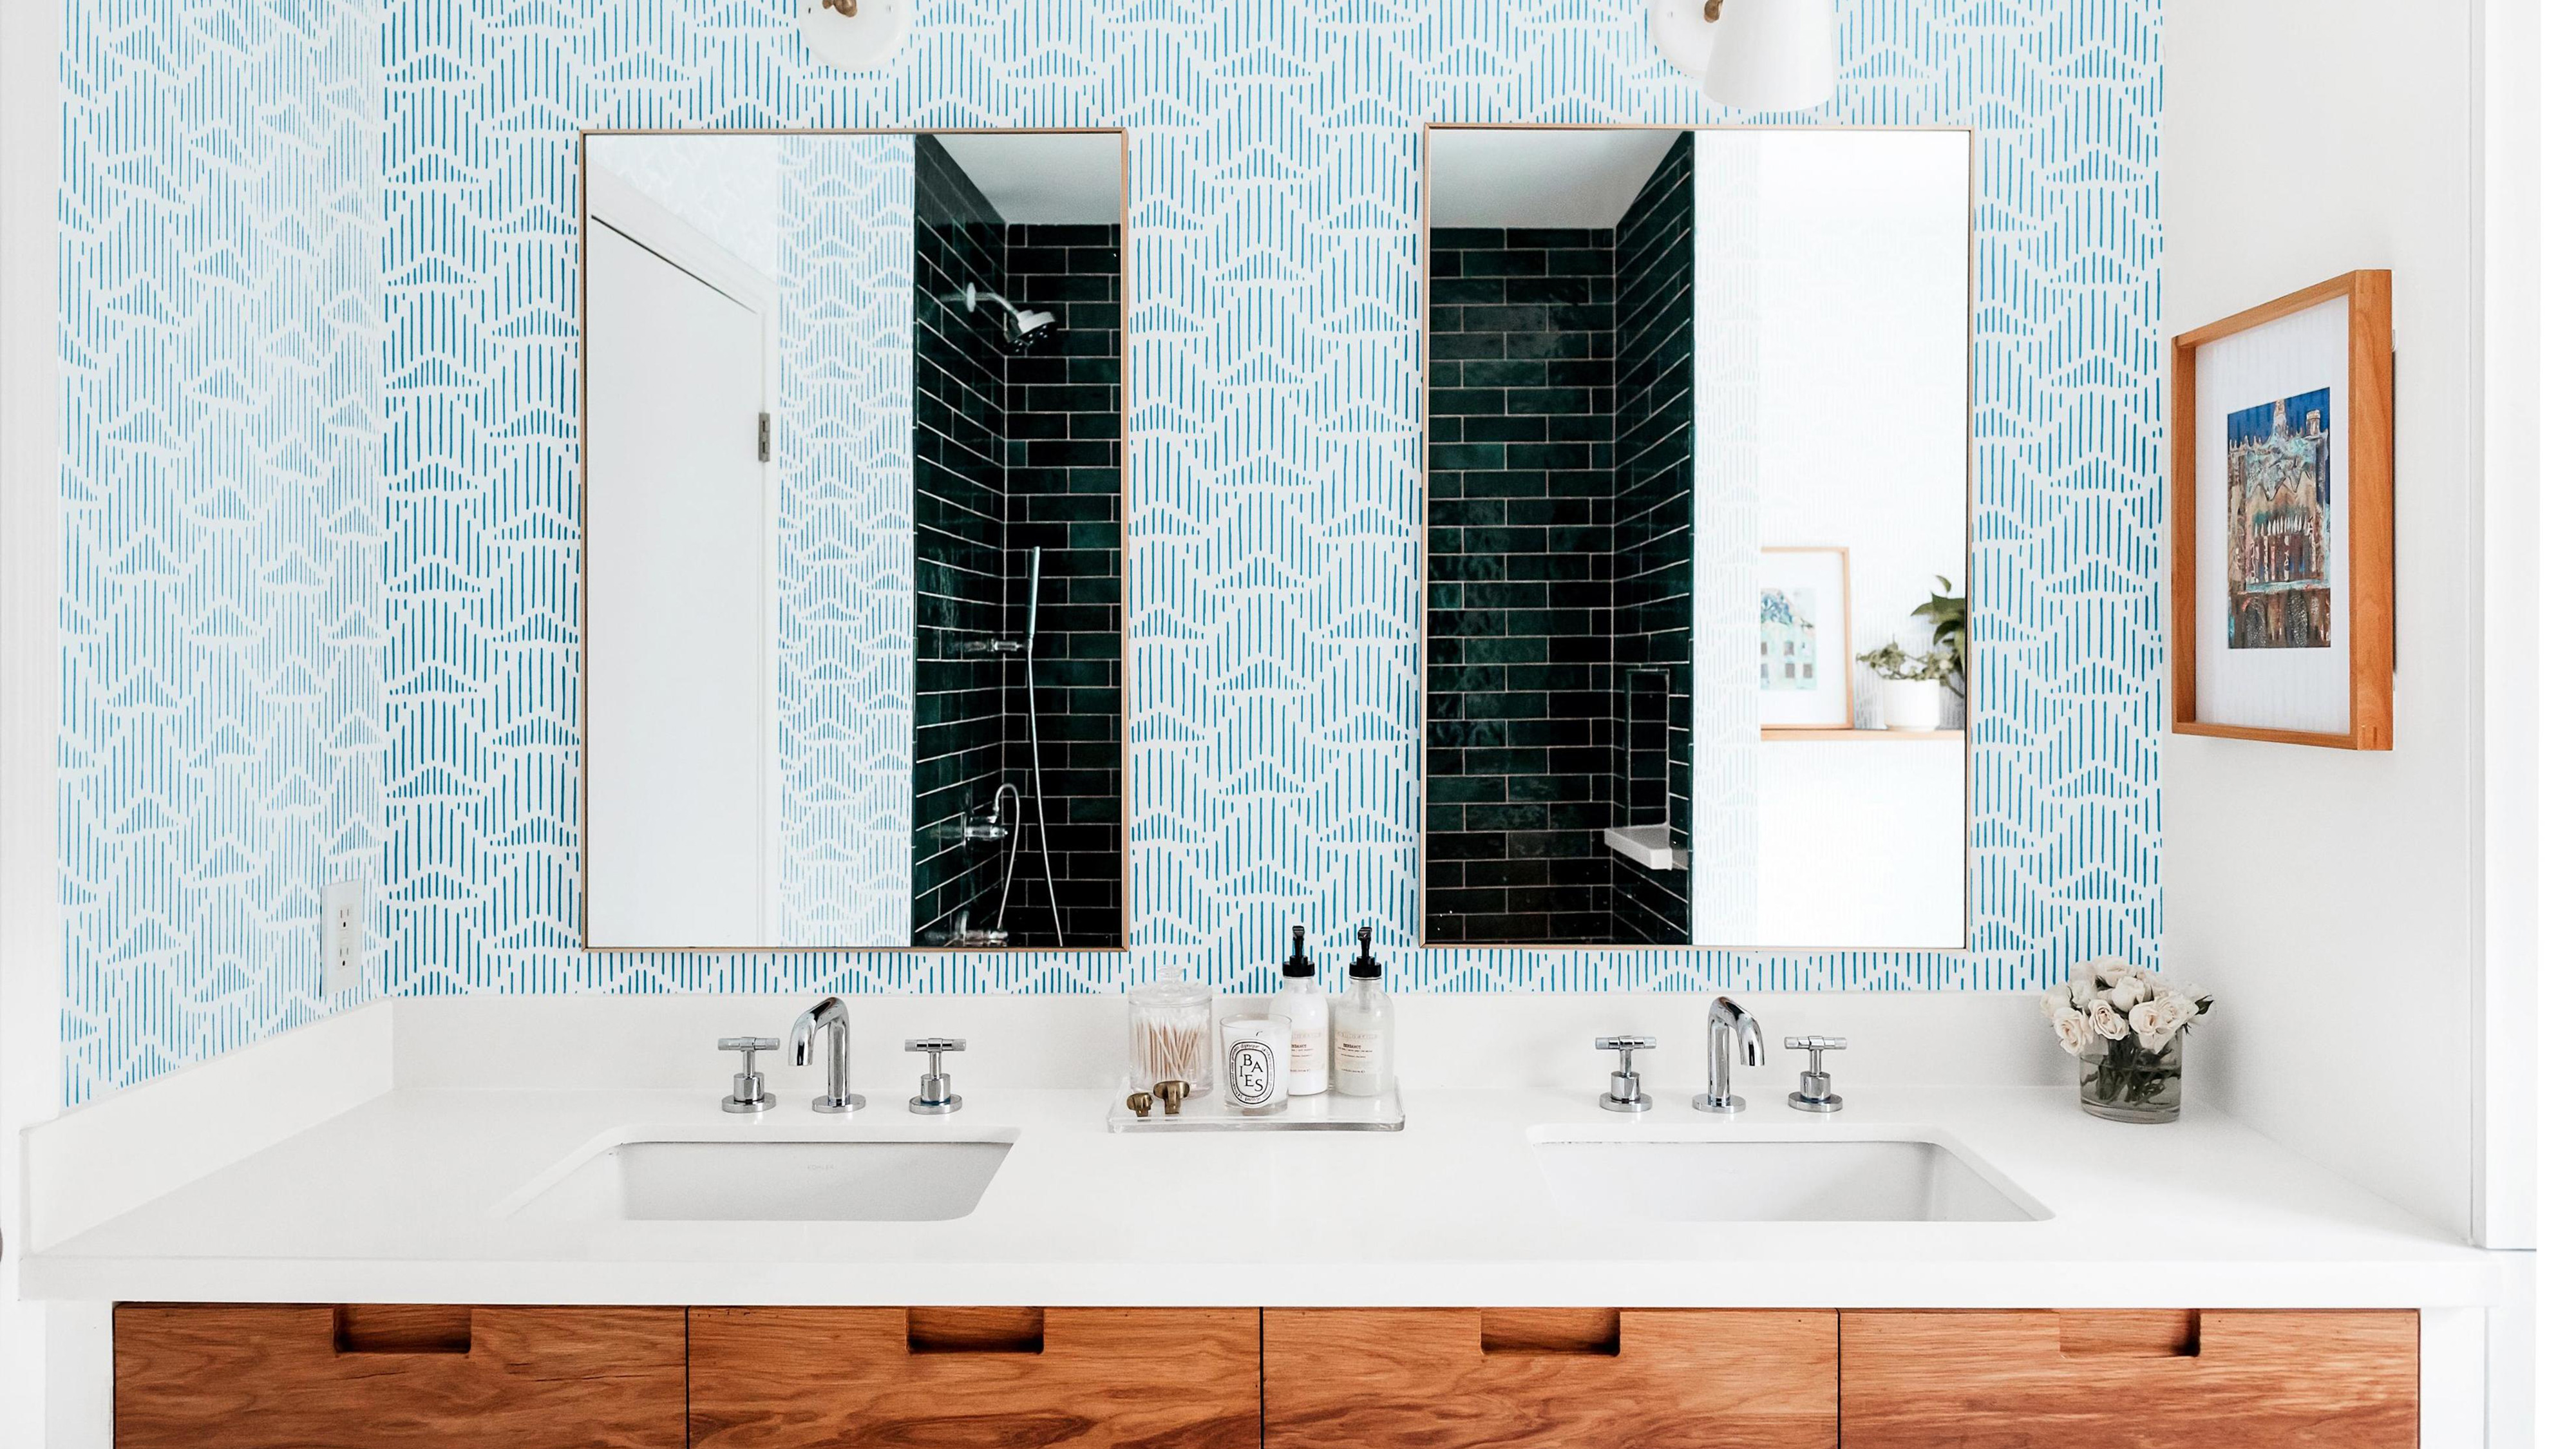 Spring 2021, Before & After Bath: Same Space, Fresh Look, view of mirrors/vanity